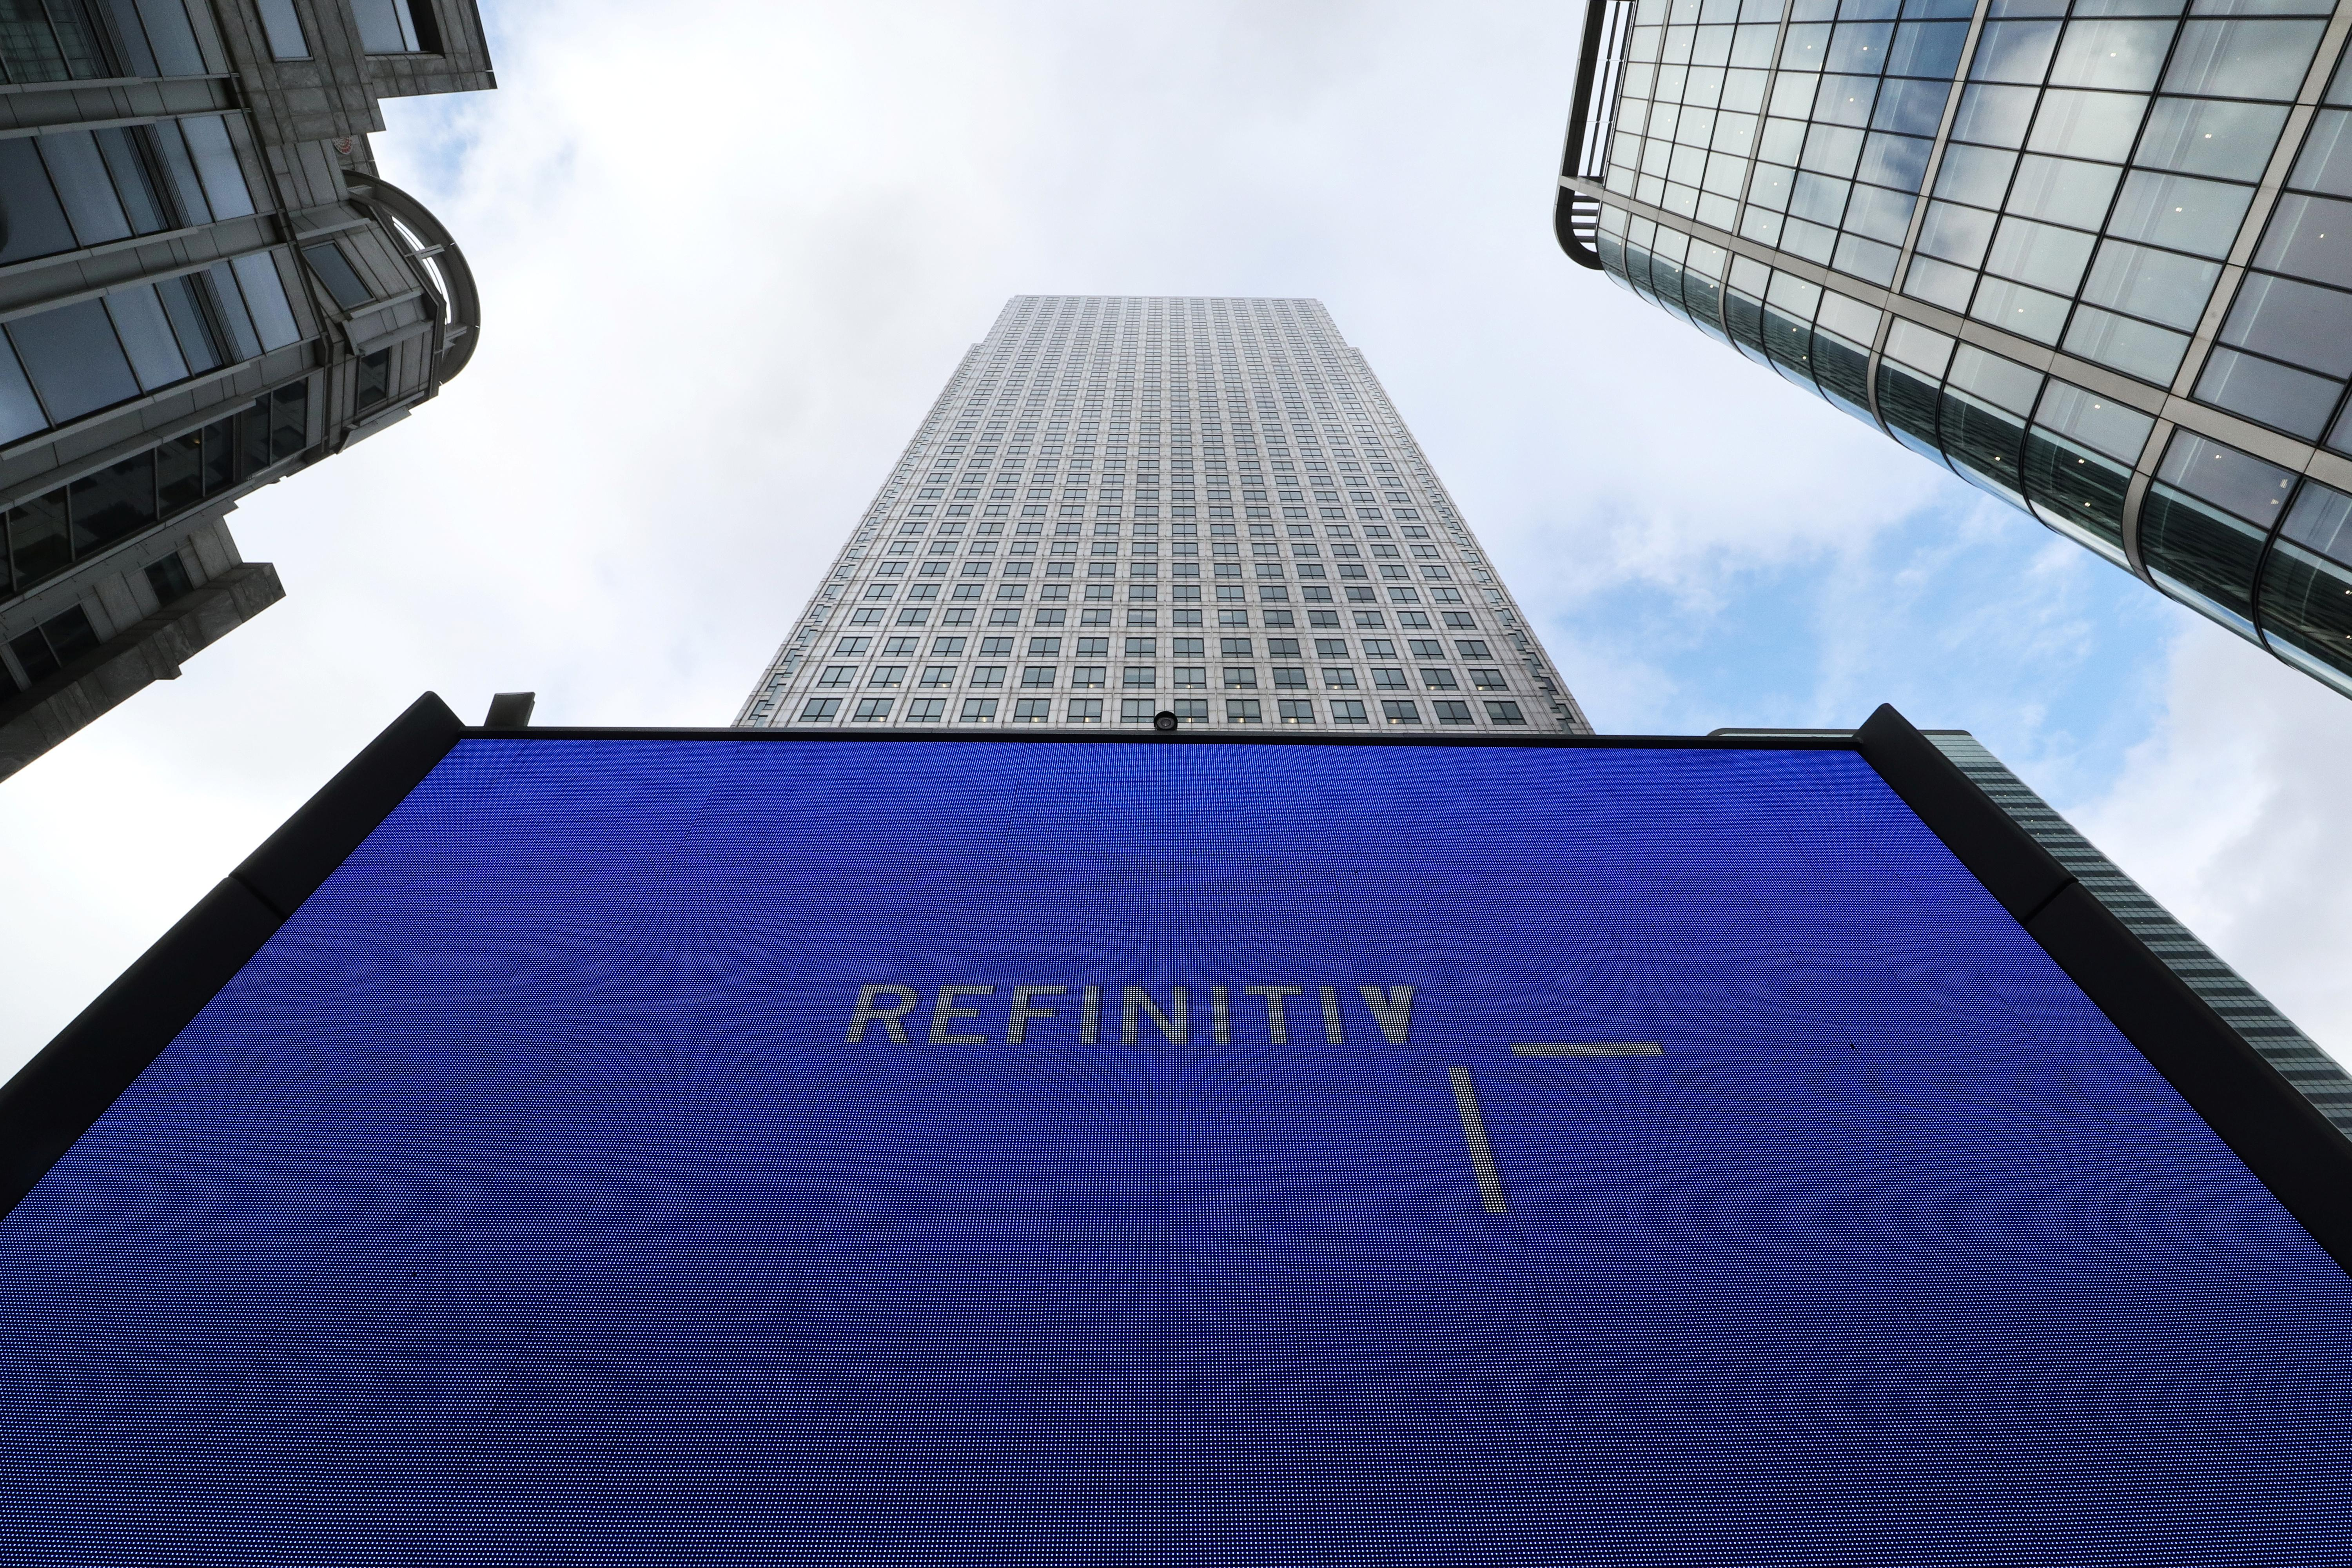 An advertisement for Refinitiv is seen on a screen in London's Canary Wharf financial centre, London, Britain, October 2, 2018. Russell Boyce